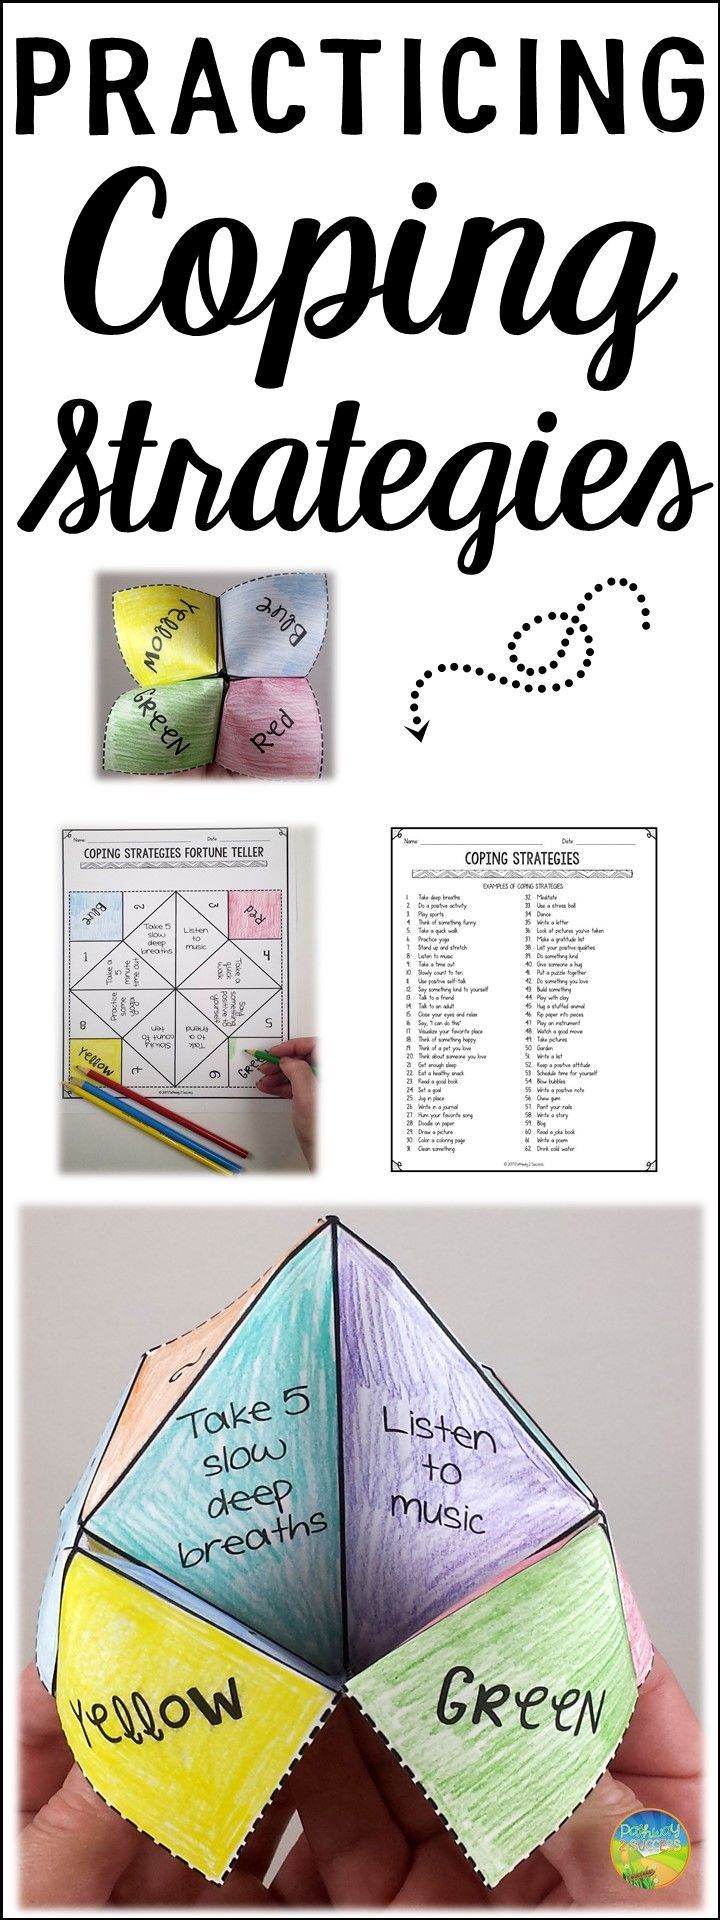 How to Use a Fortune Teller to Practice Coping Strategies With Your ...